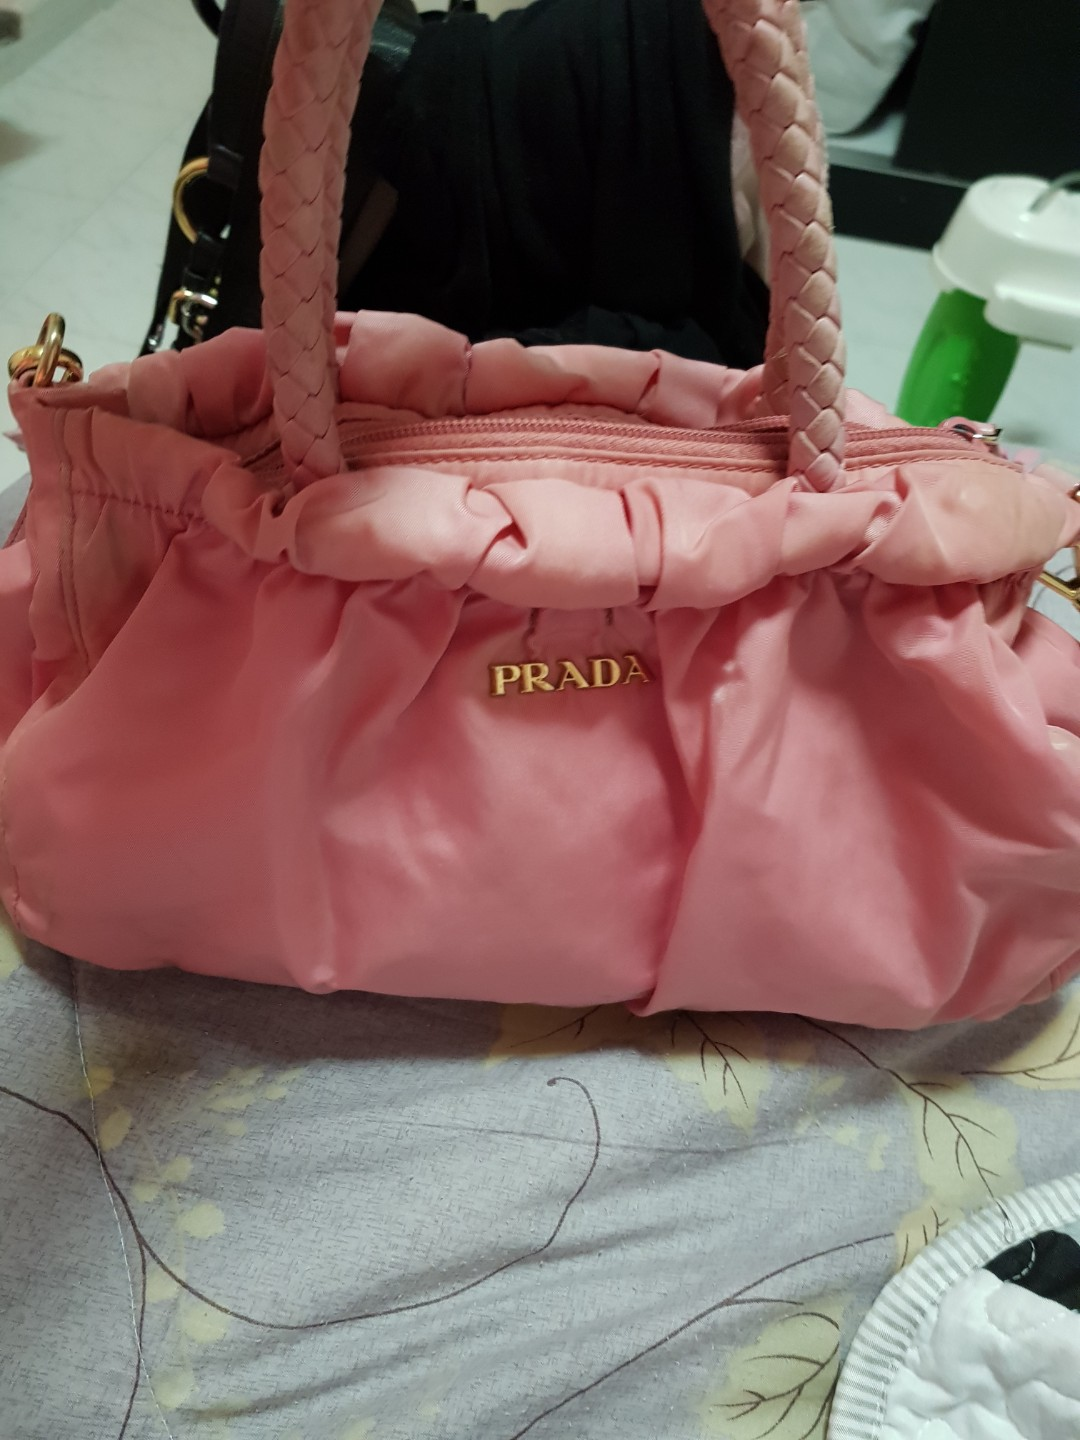 ... netherlands prada bag luxury bags wallets handbags on carousell d789b  f70ec 4c45680d112f7